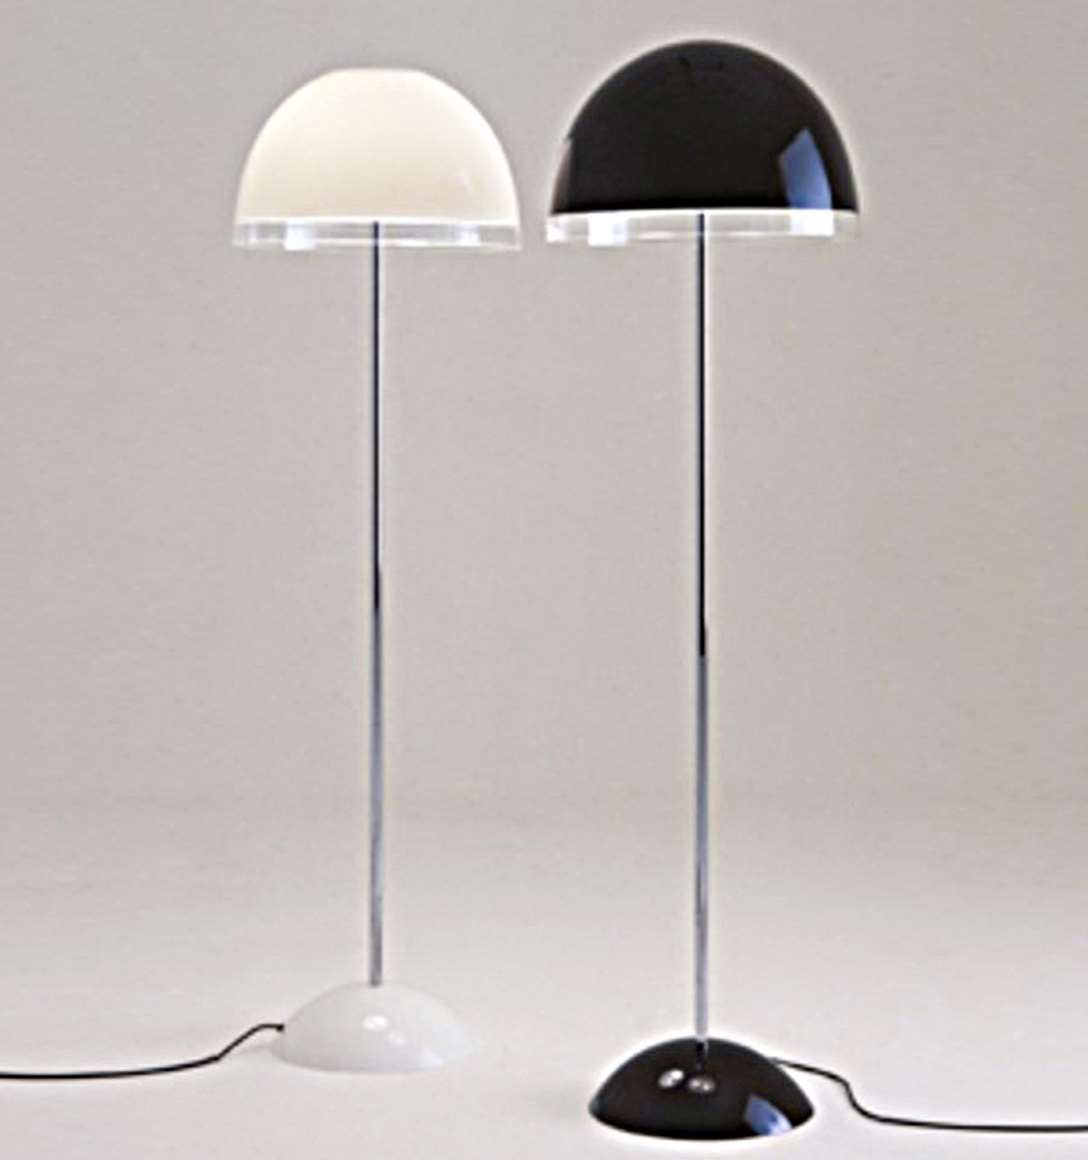 iGuzzini Baobab Floor Lamps - white & black